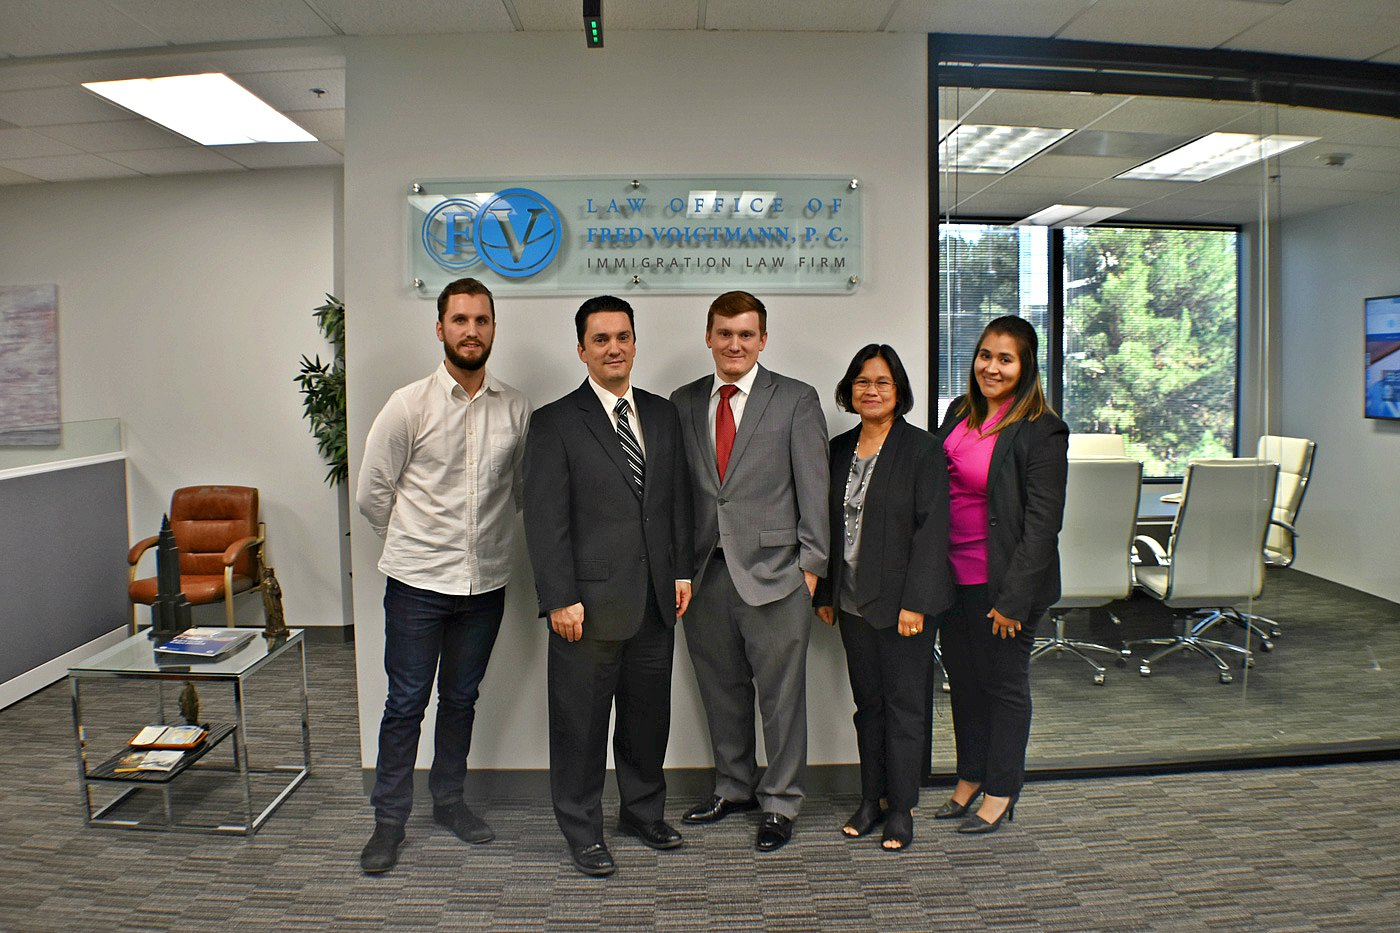 Staff Law Office of Fred Voigtmann in CA